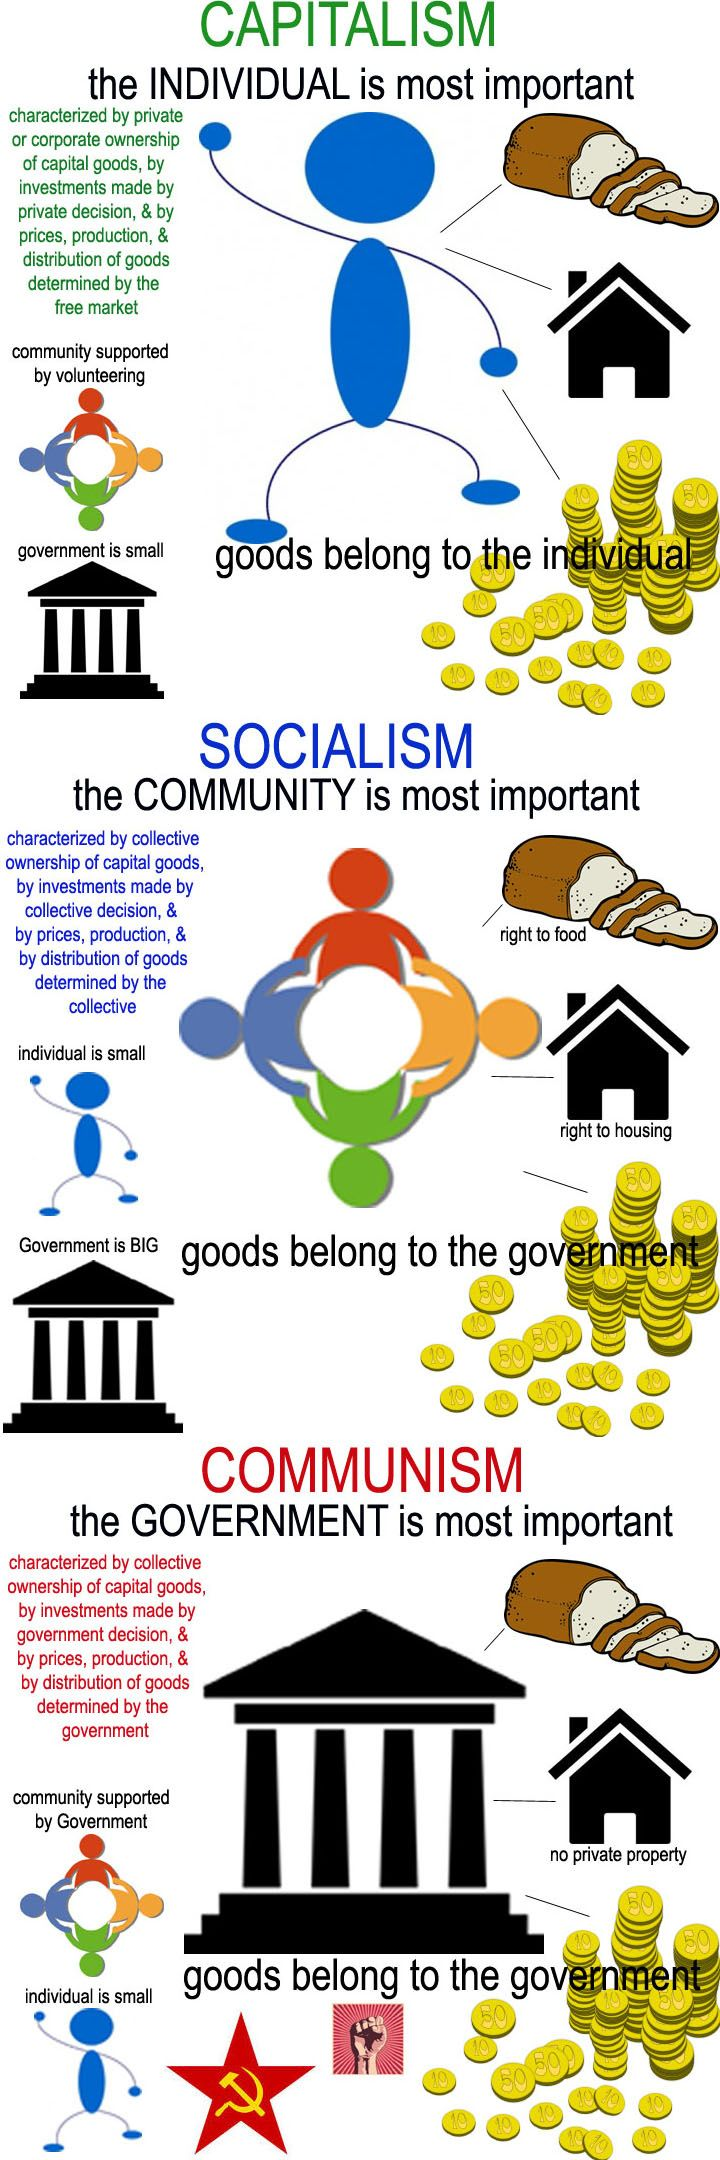 Understanding the differences between capitalism, socialism & communism (construct is mine @Sugar Blisters, clip art is other's) #candysores